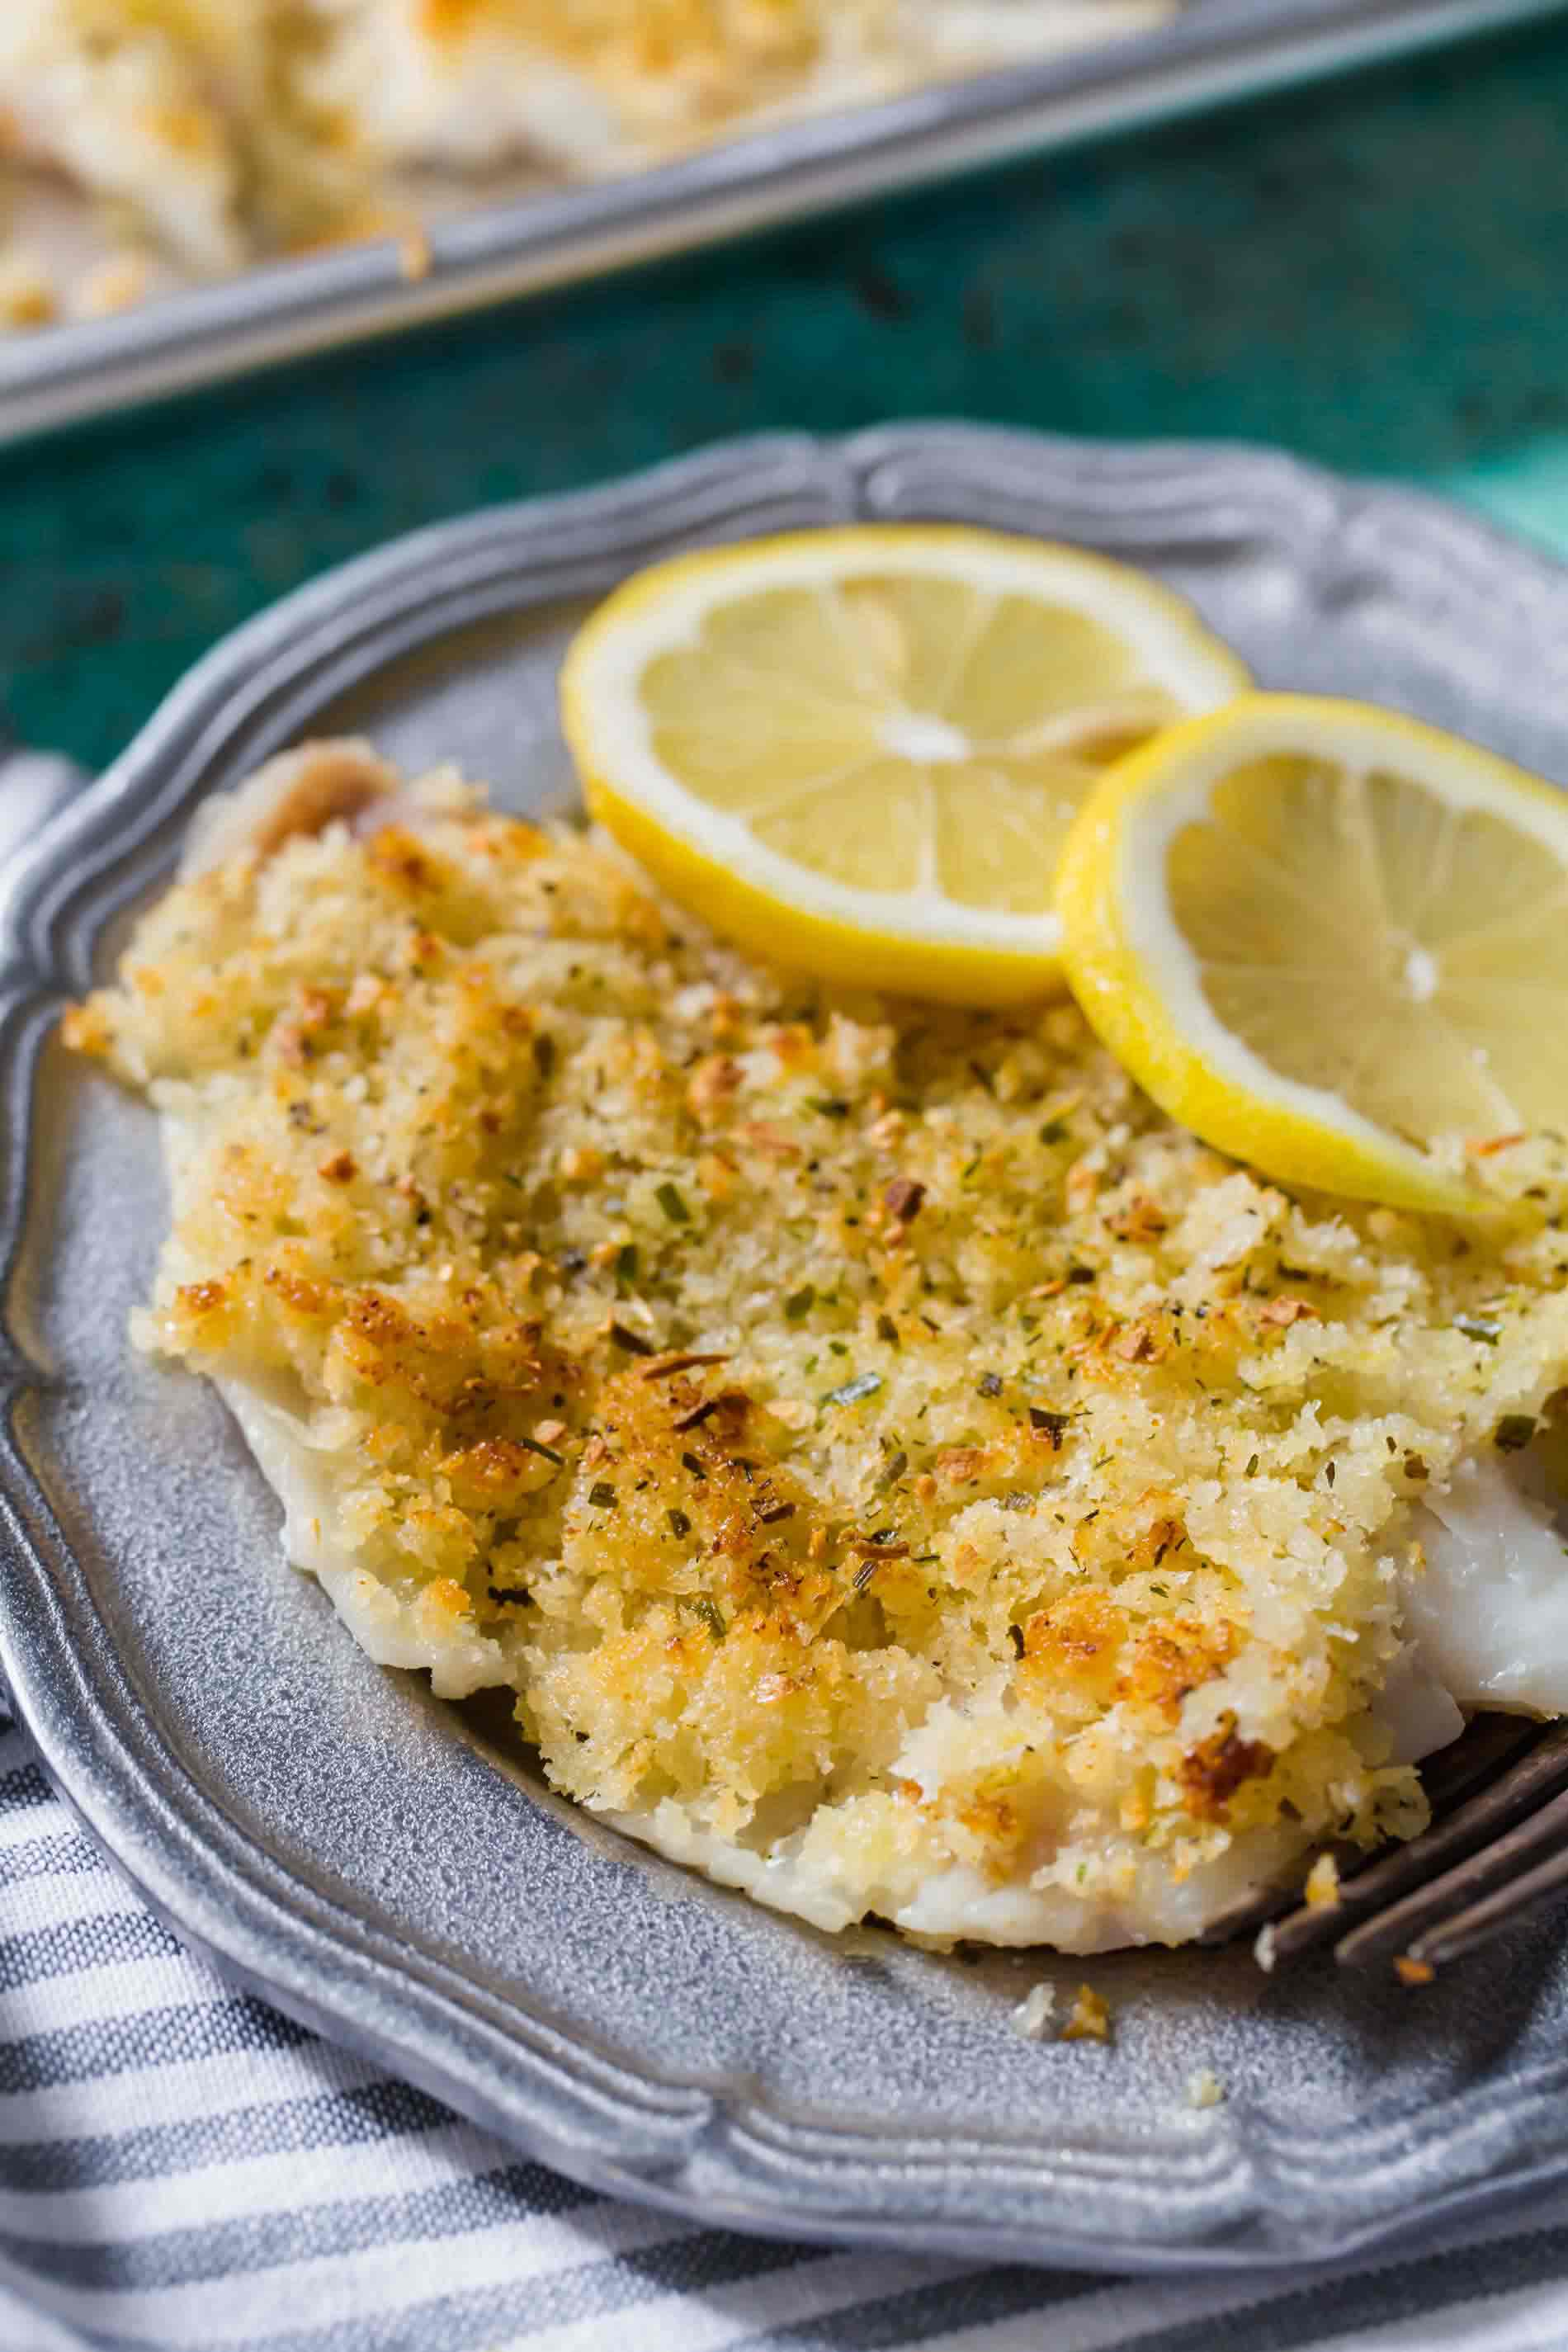 If you're looking for a quick seafood dinner, this crispy baked haddock comes together in less than 20 minutes and it is packed with a flavorful punch!